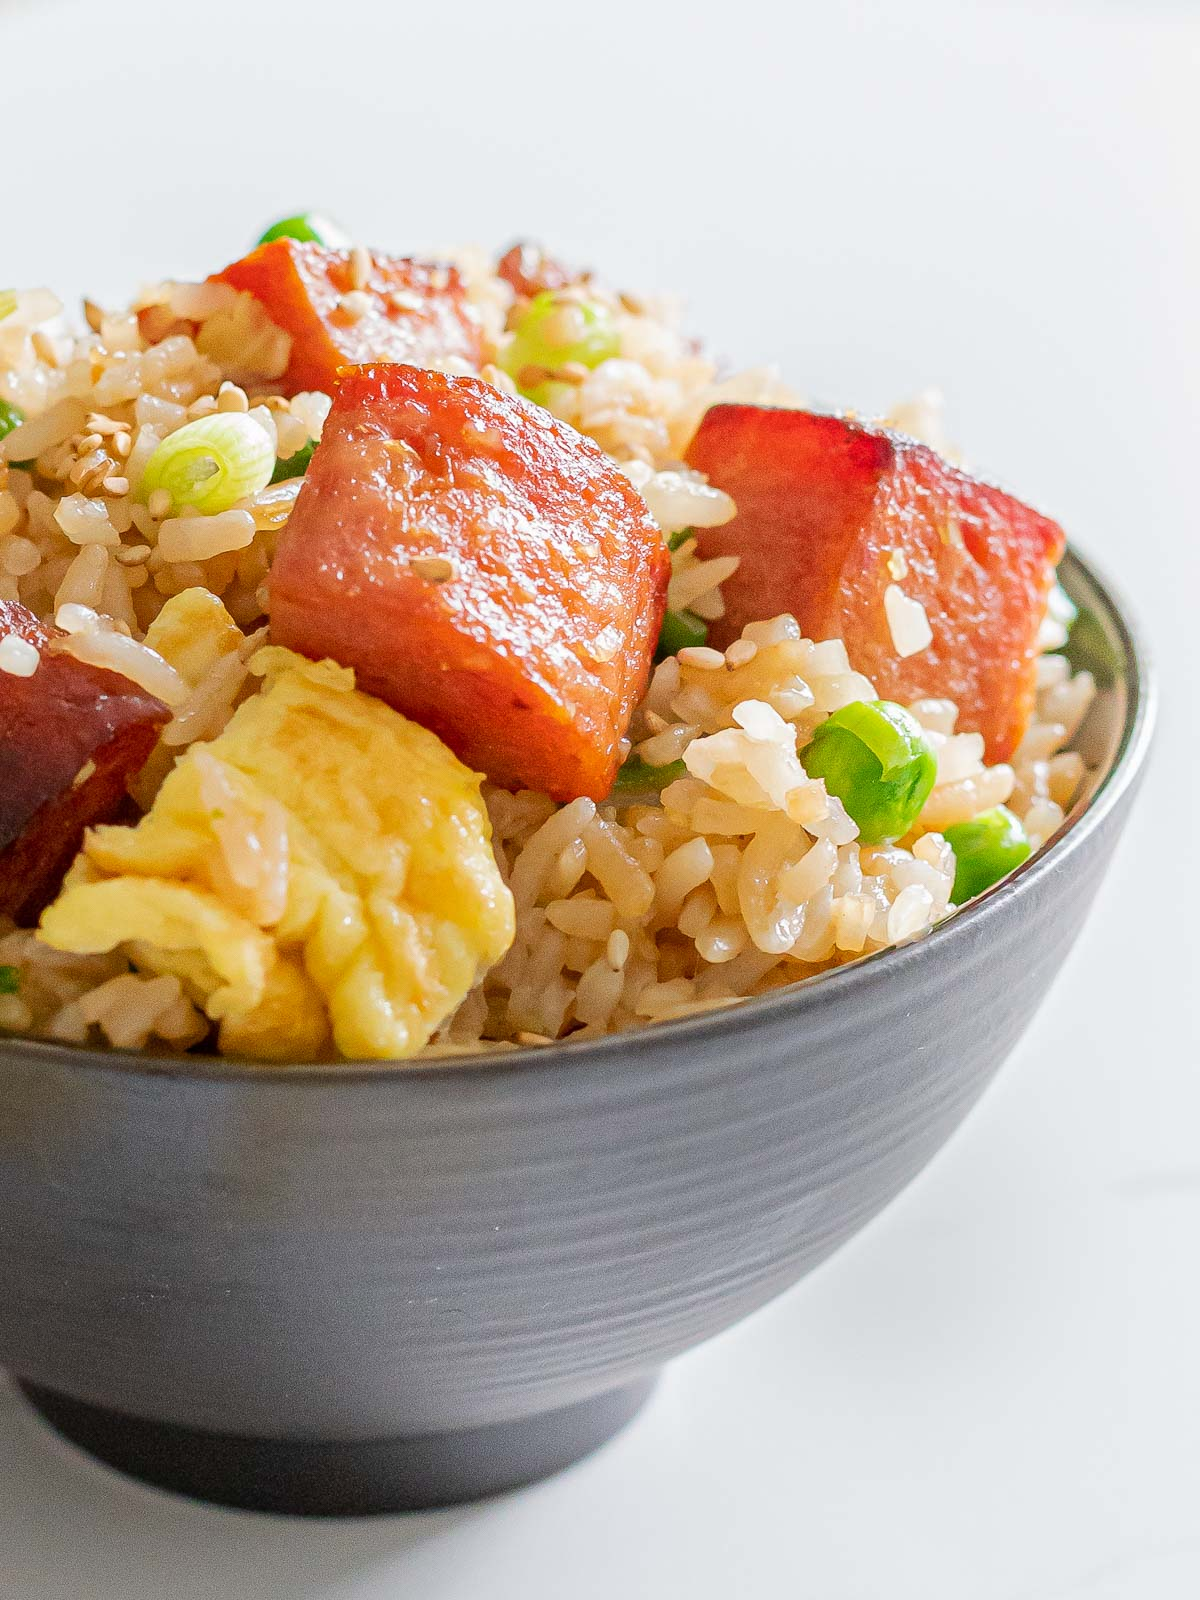 close up of spam fried rice with eggs, green peas, and rice in a dark bowl